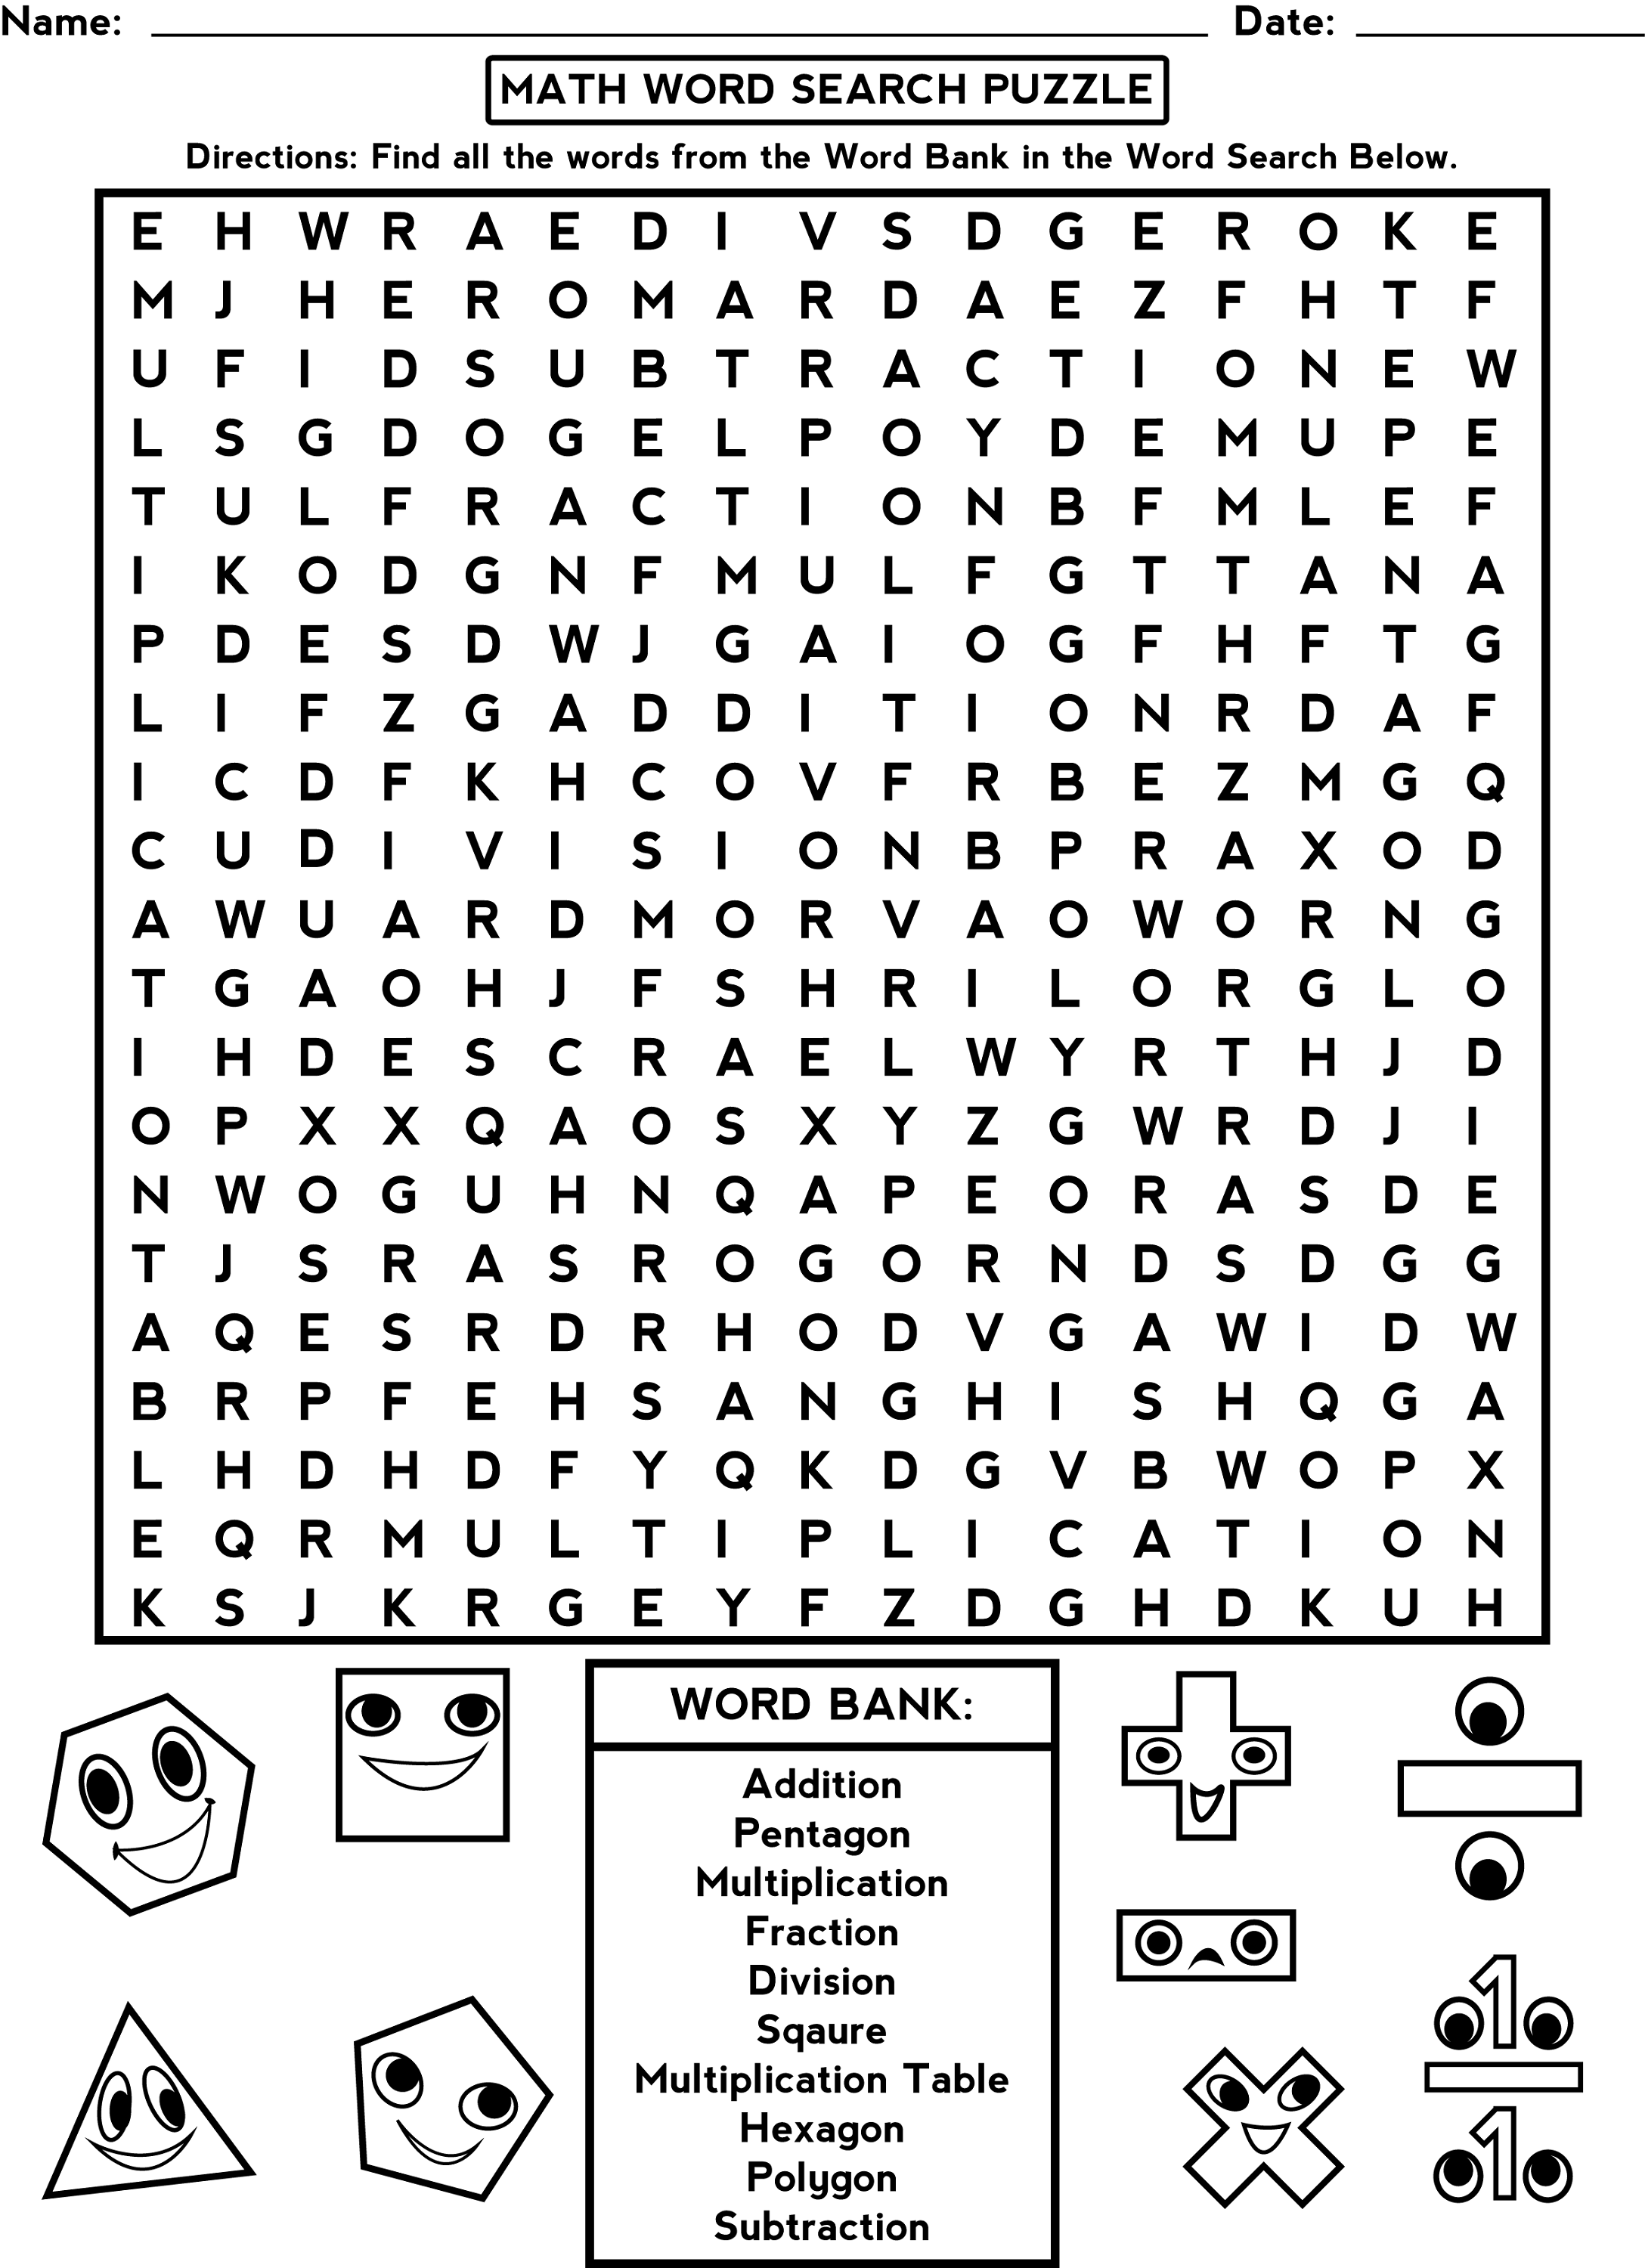 Worksheets Math Puzzle Worksheets For Middle School word search worksheets for brain activity shelter worksheet math puzzle middle school varietycar with 53 related worksheets